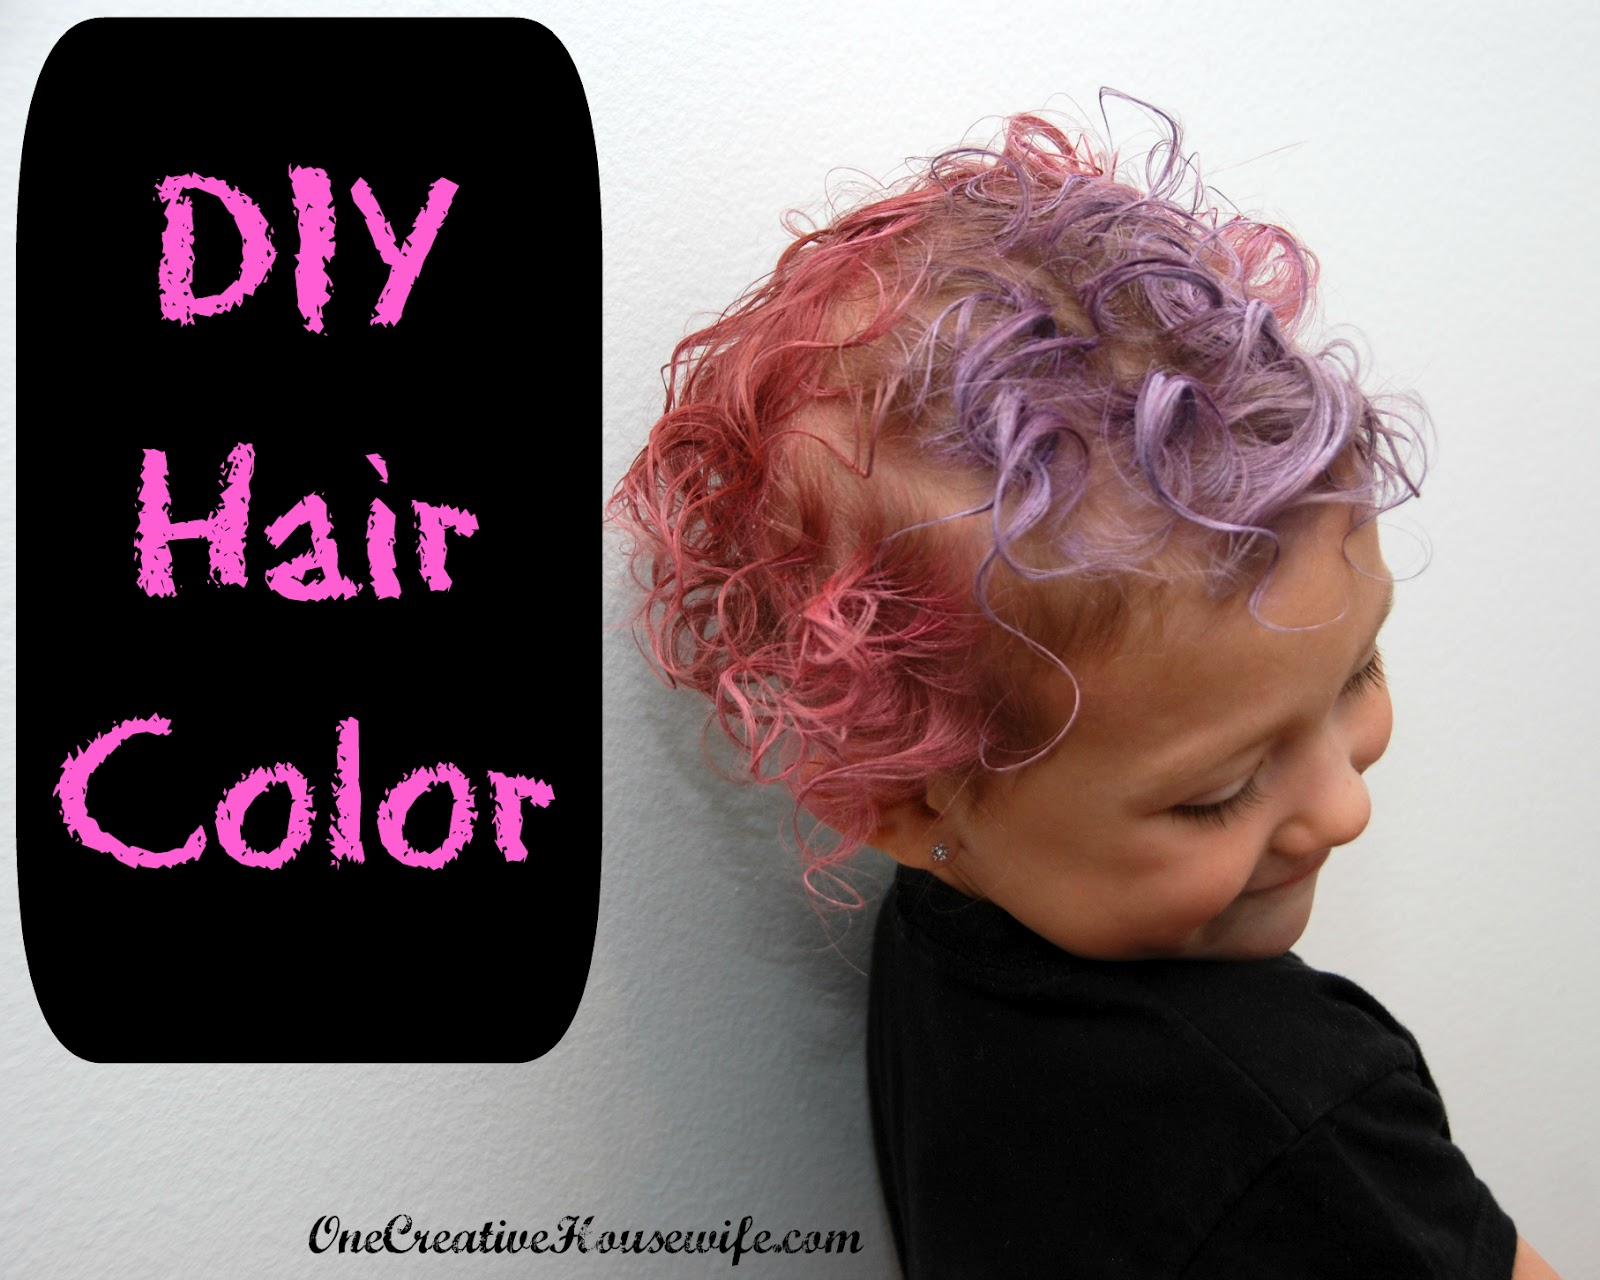 One Creative Housewife: DIY Hair Color